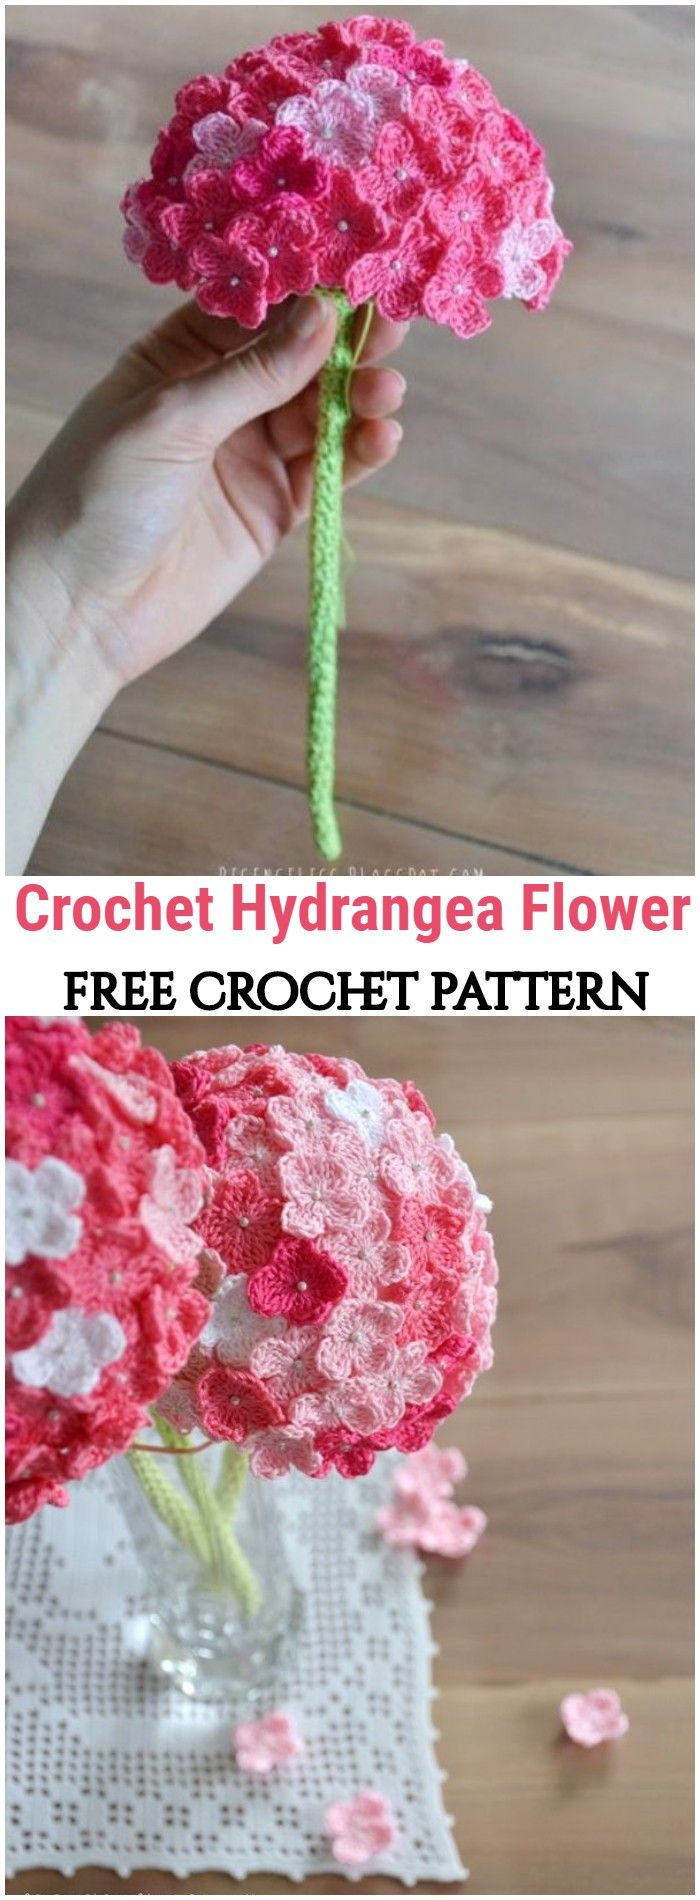 Flowers are the wonderful God gifted items. In this post, I have found a collection of 15 free crochet flower patterns that are really very easy and cute. #freecrochetpatterns#crochetflowerpatterns #crochetflowerpatterns